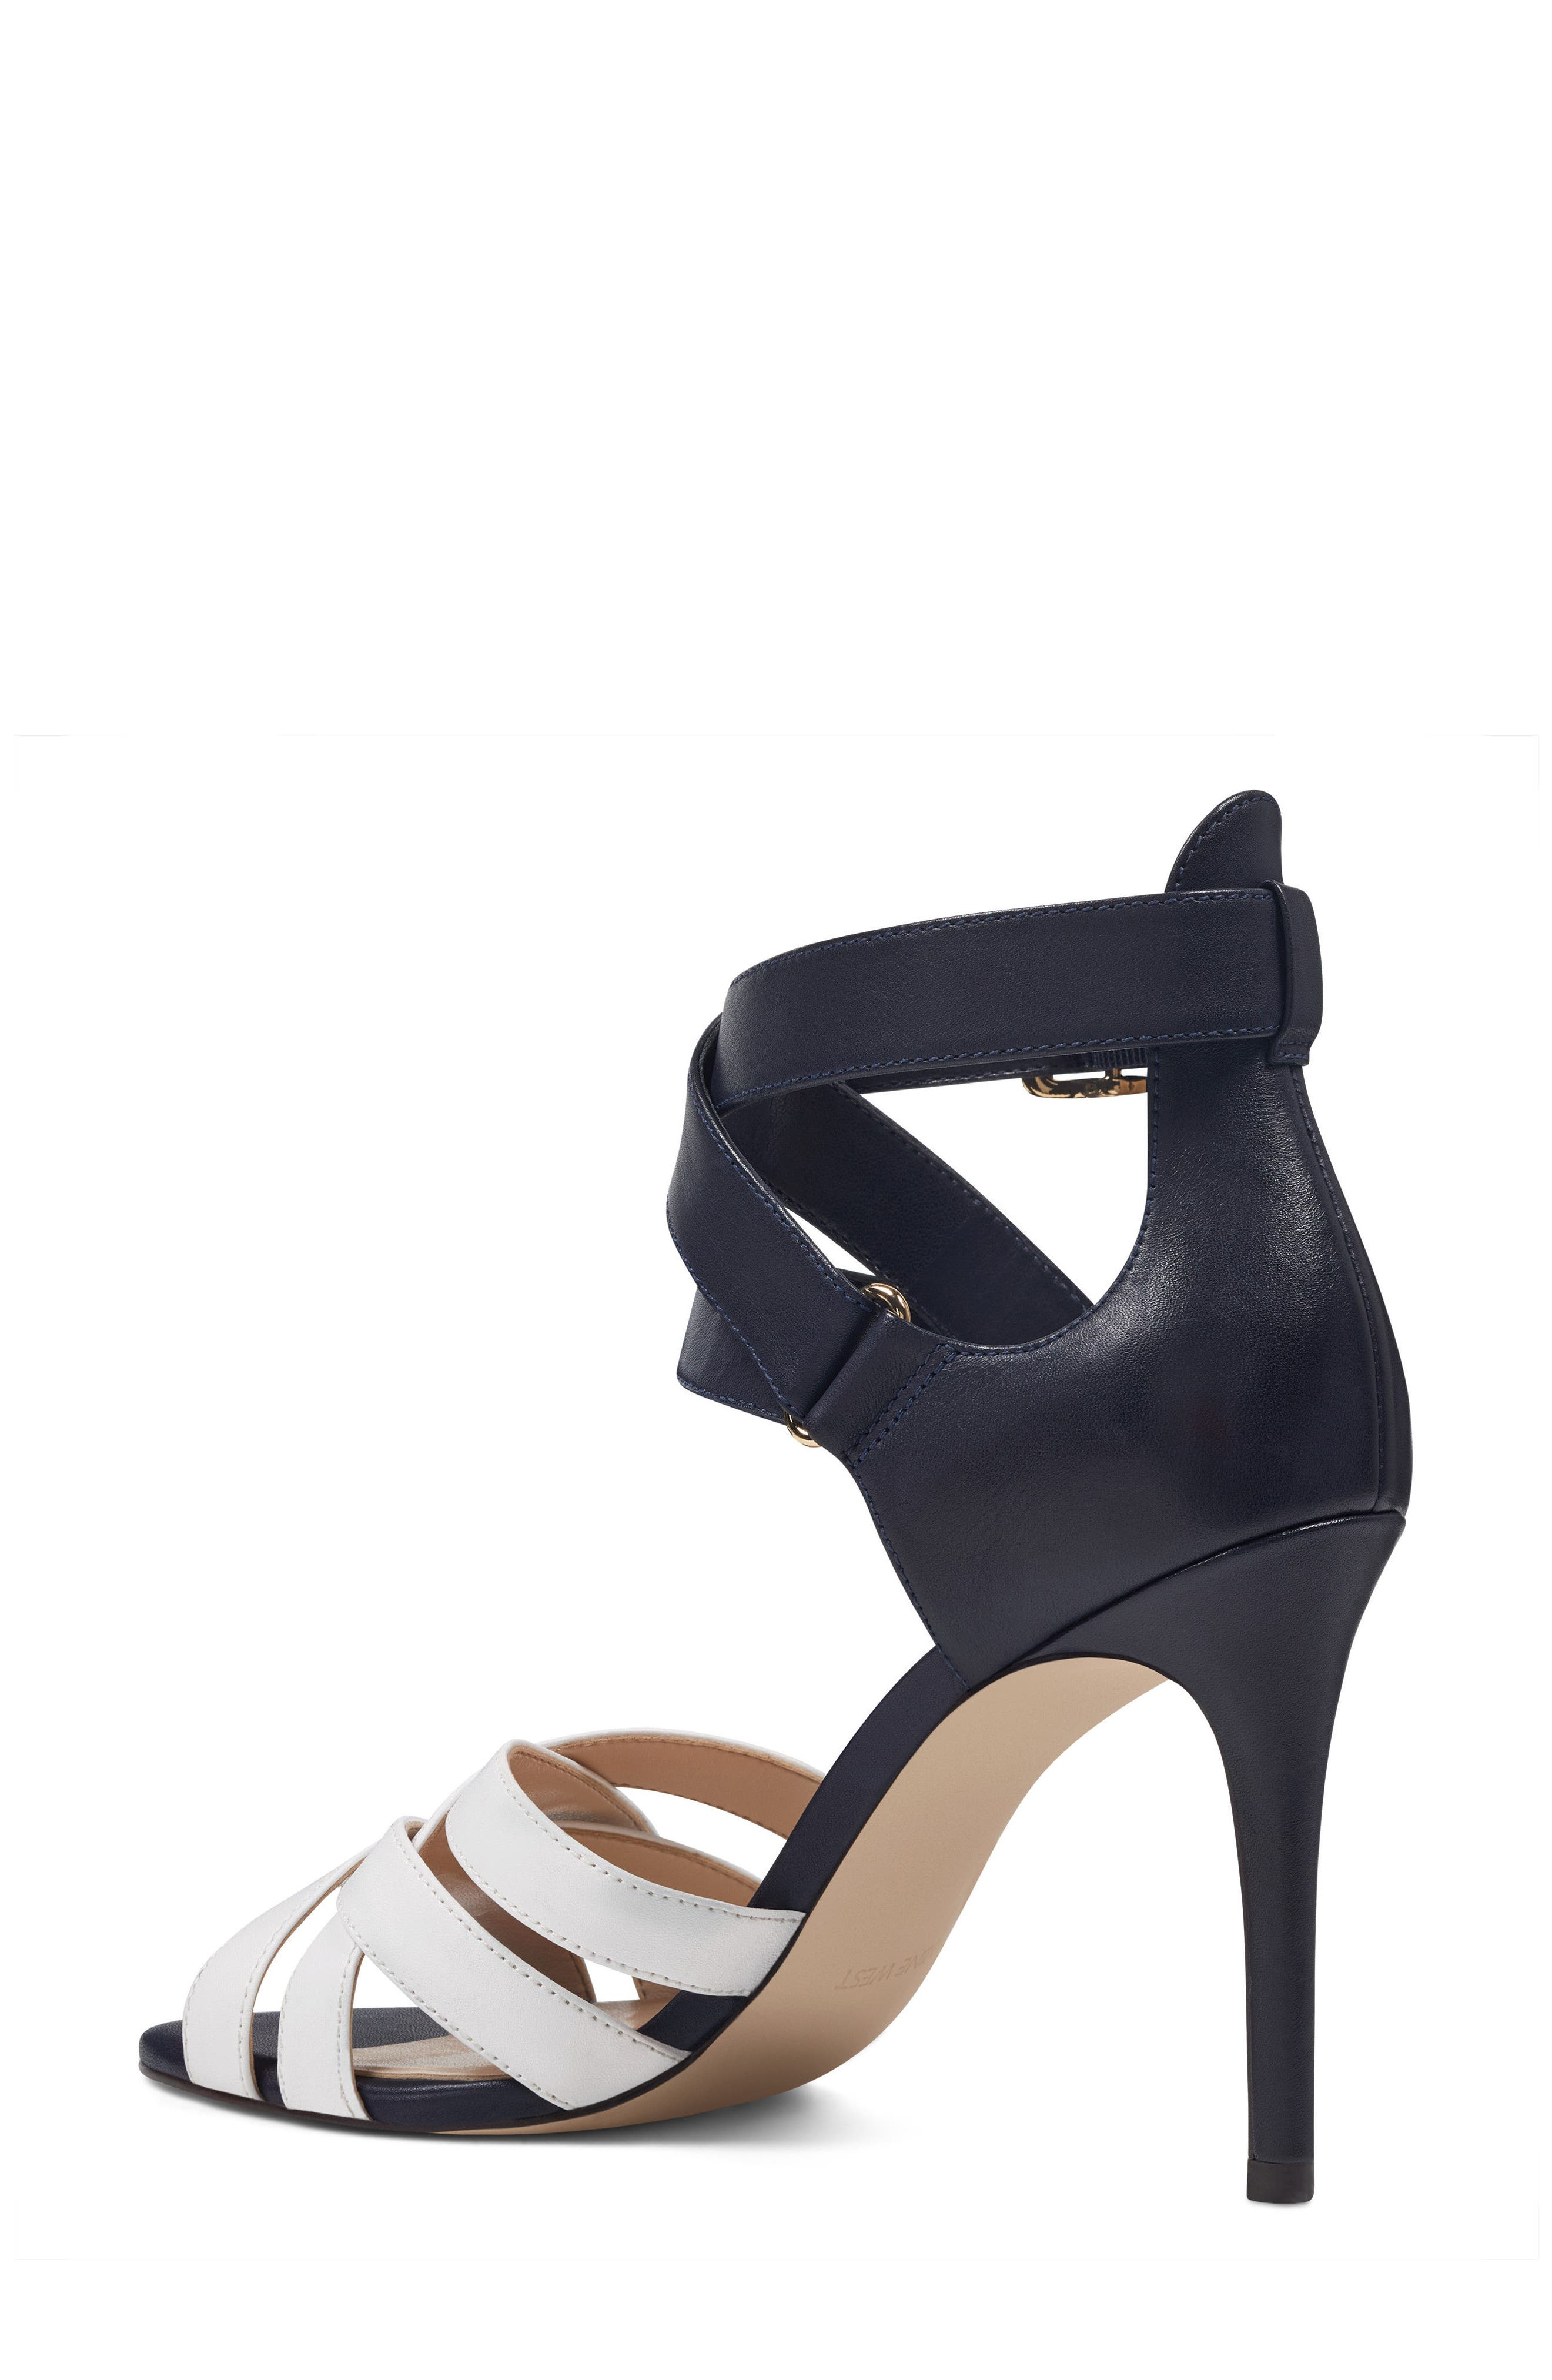 McGlynn Strappy Sandal,                             Alternate thumbnail 2, color,                             Navy/ White Leather